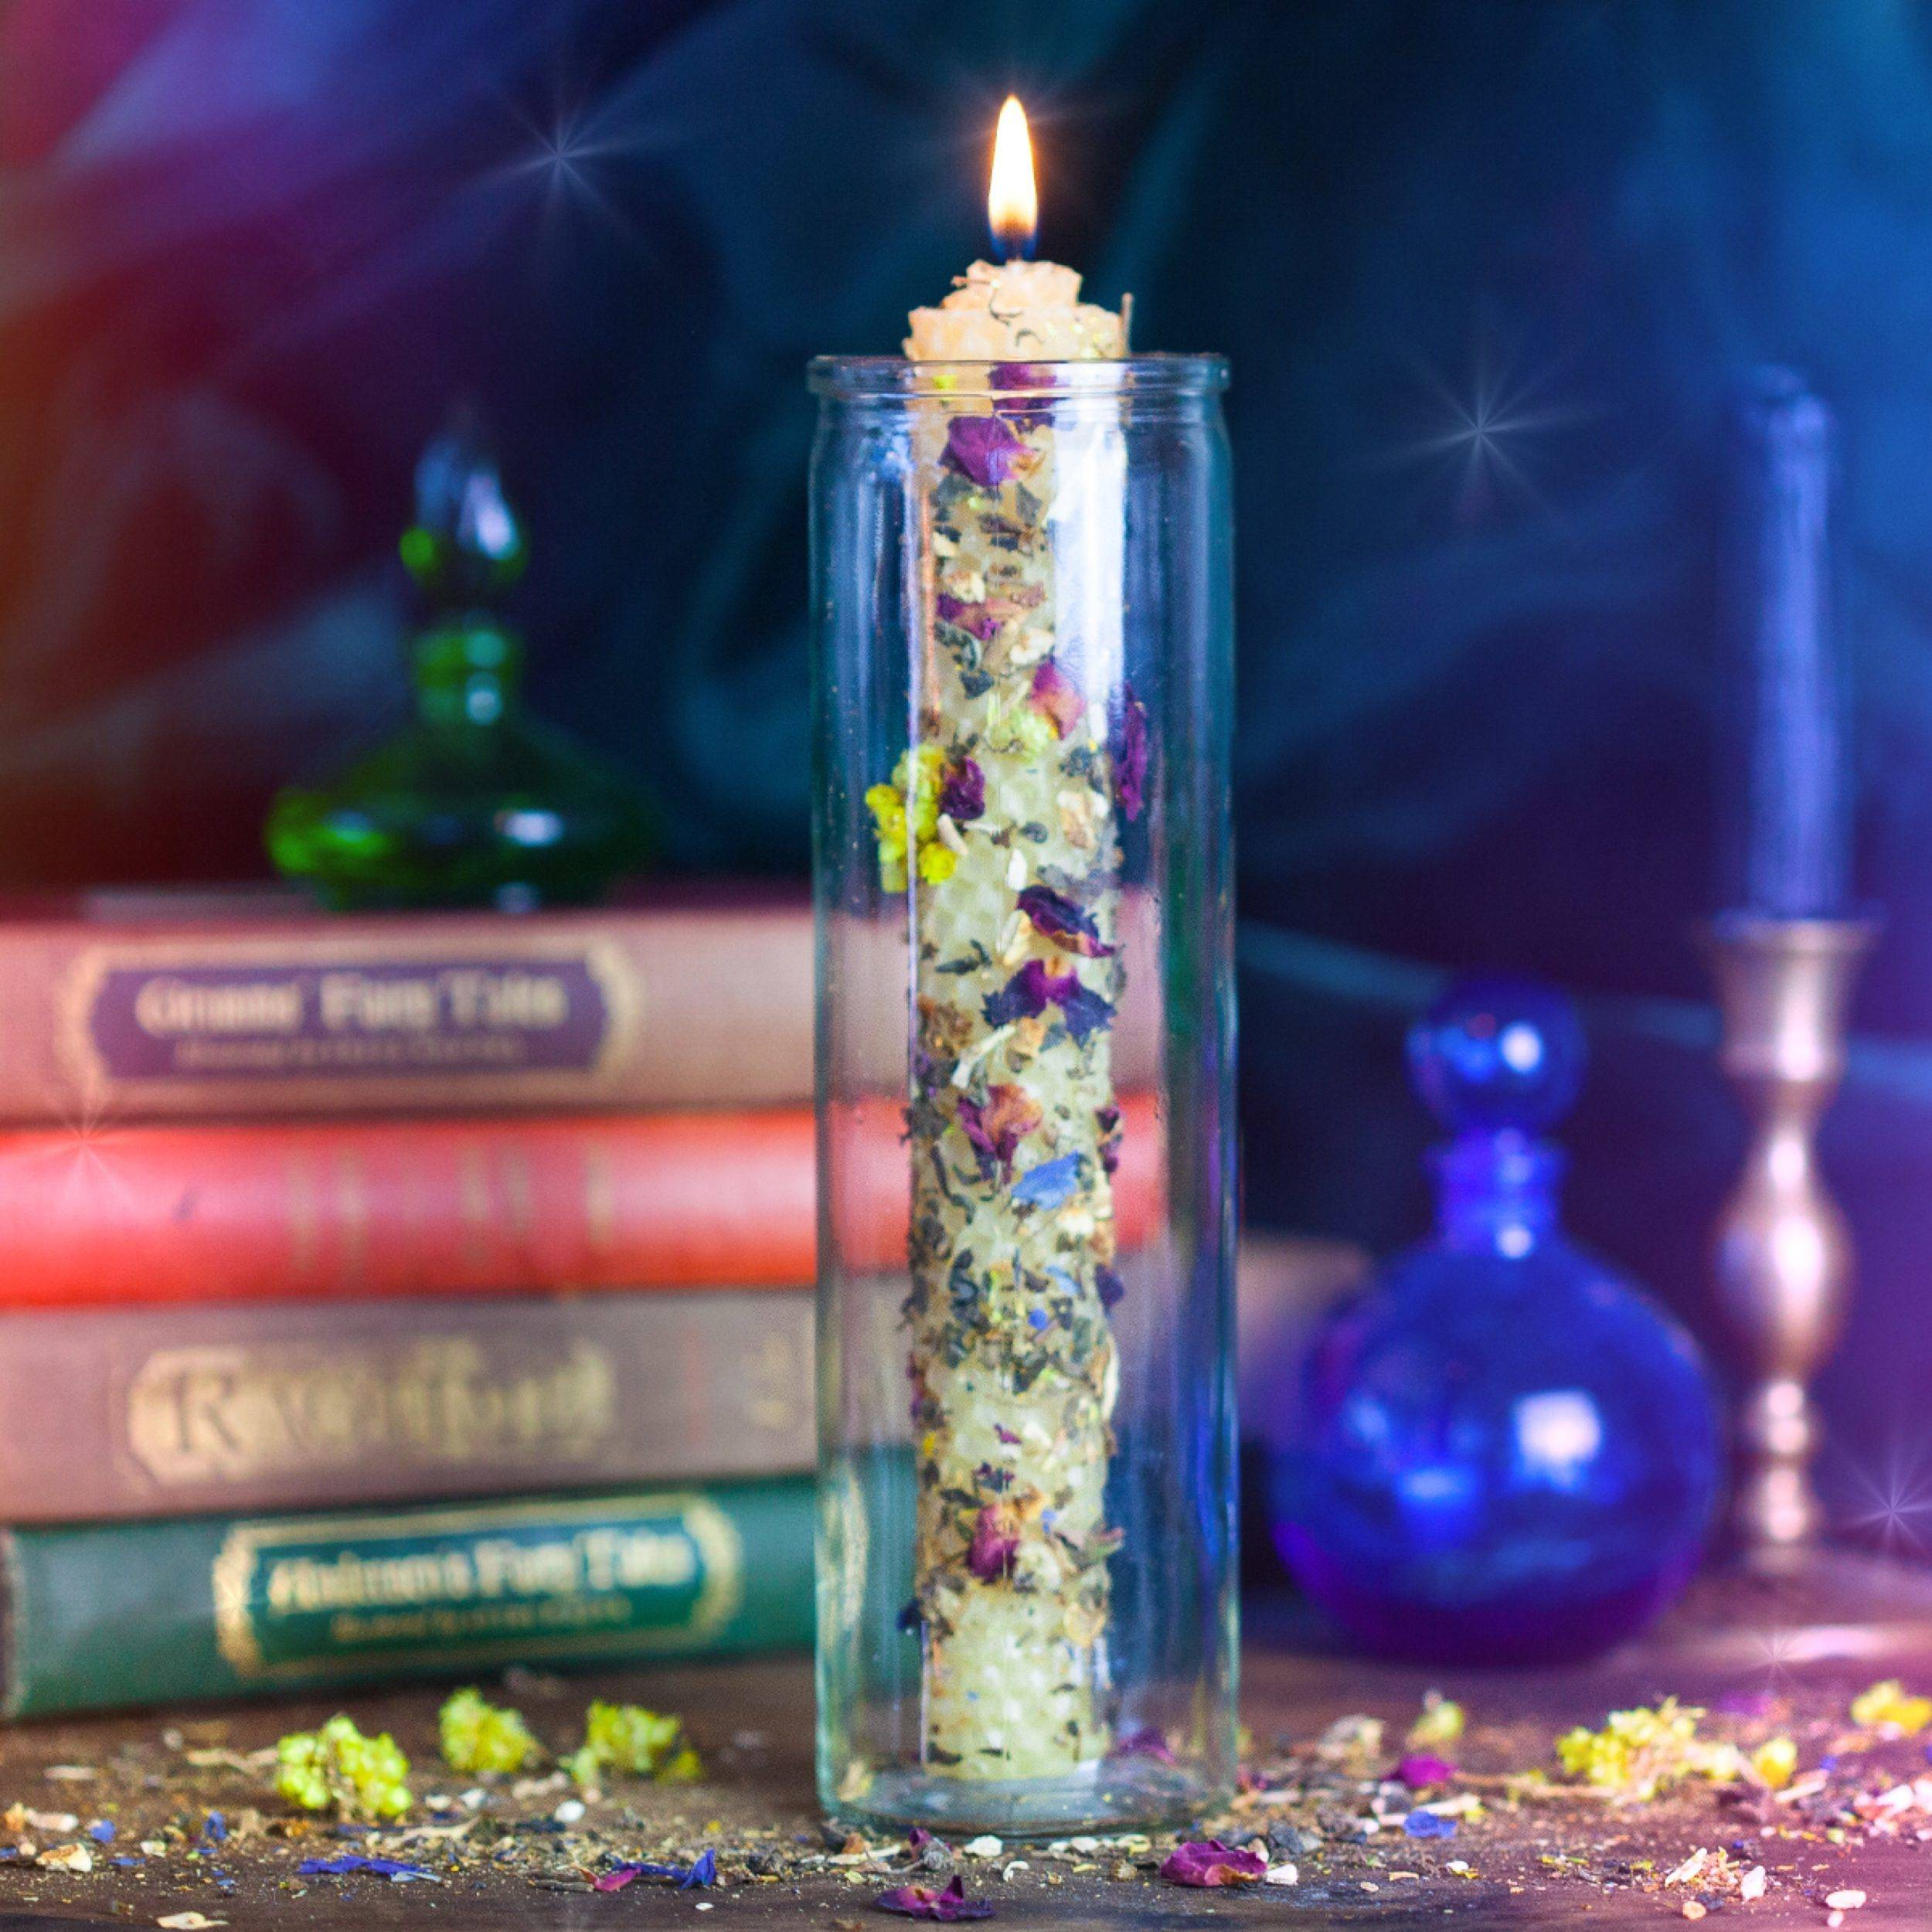 Sacred_Spell_Candles_1of2_9_19